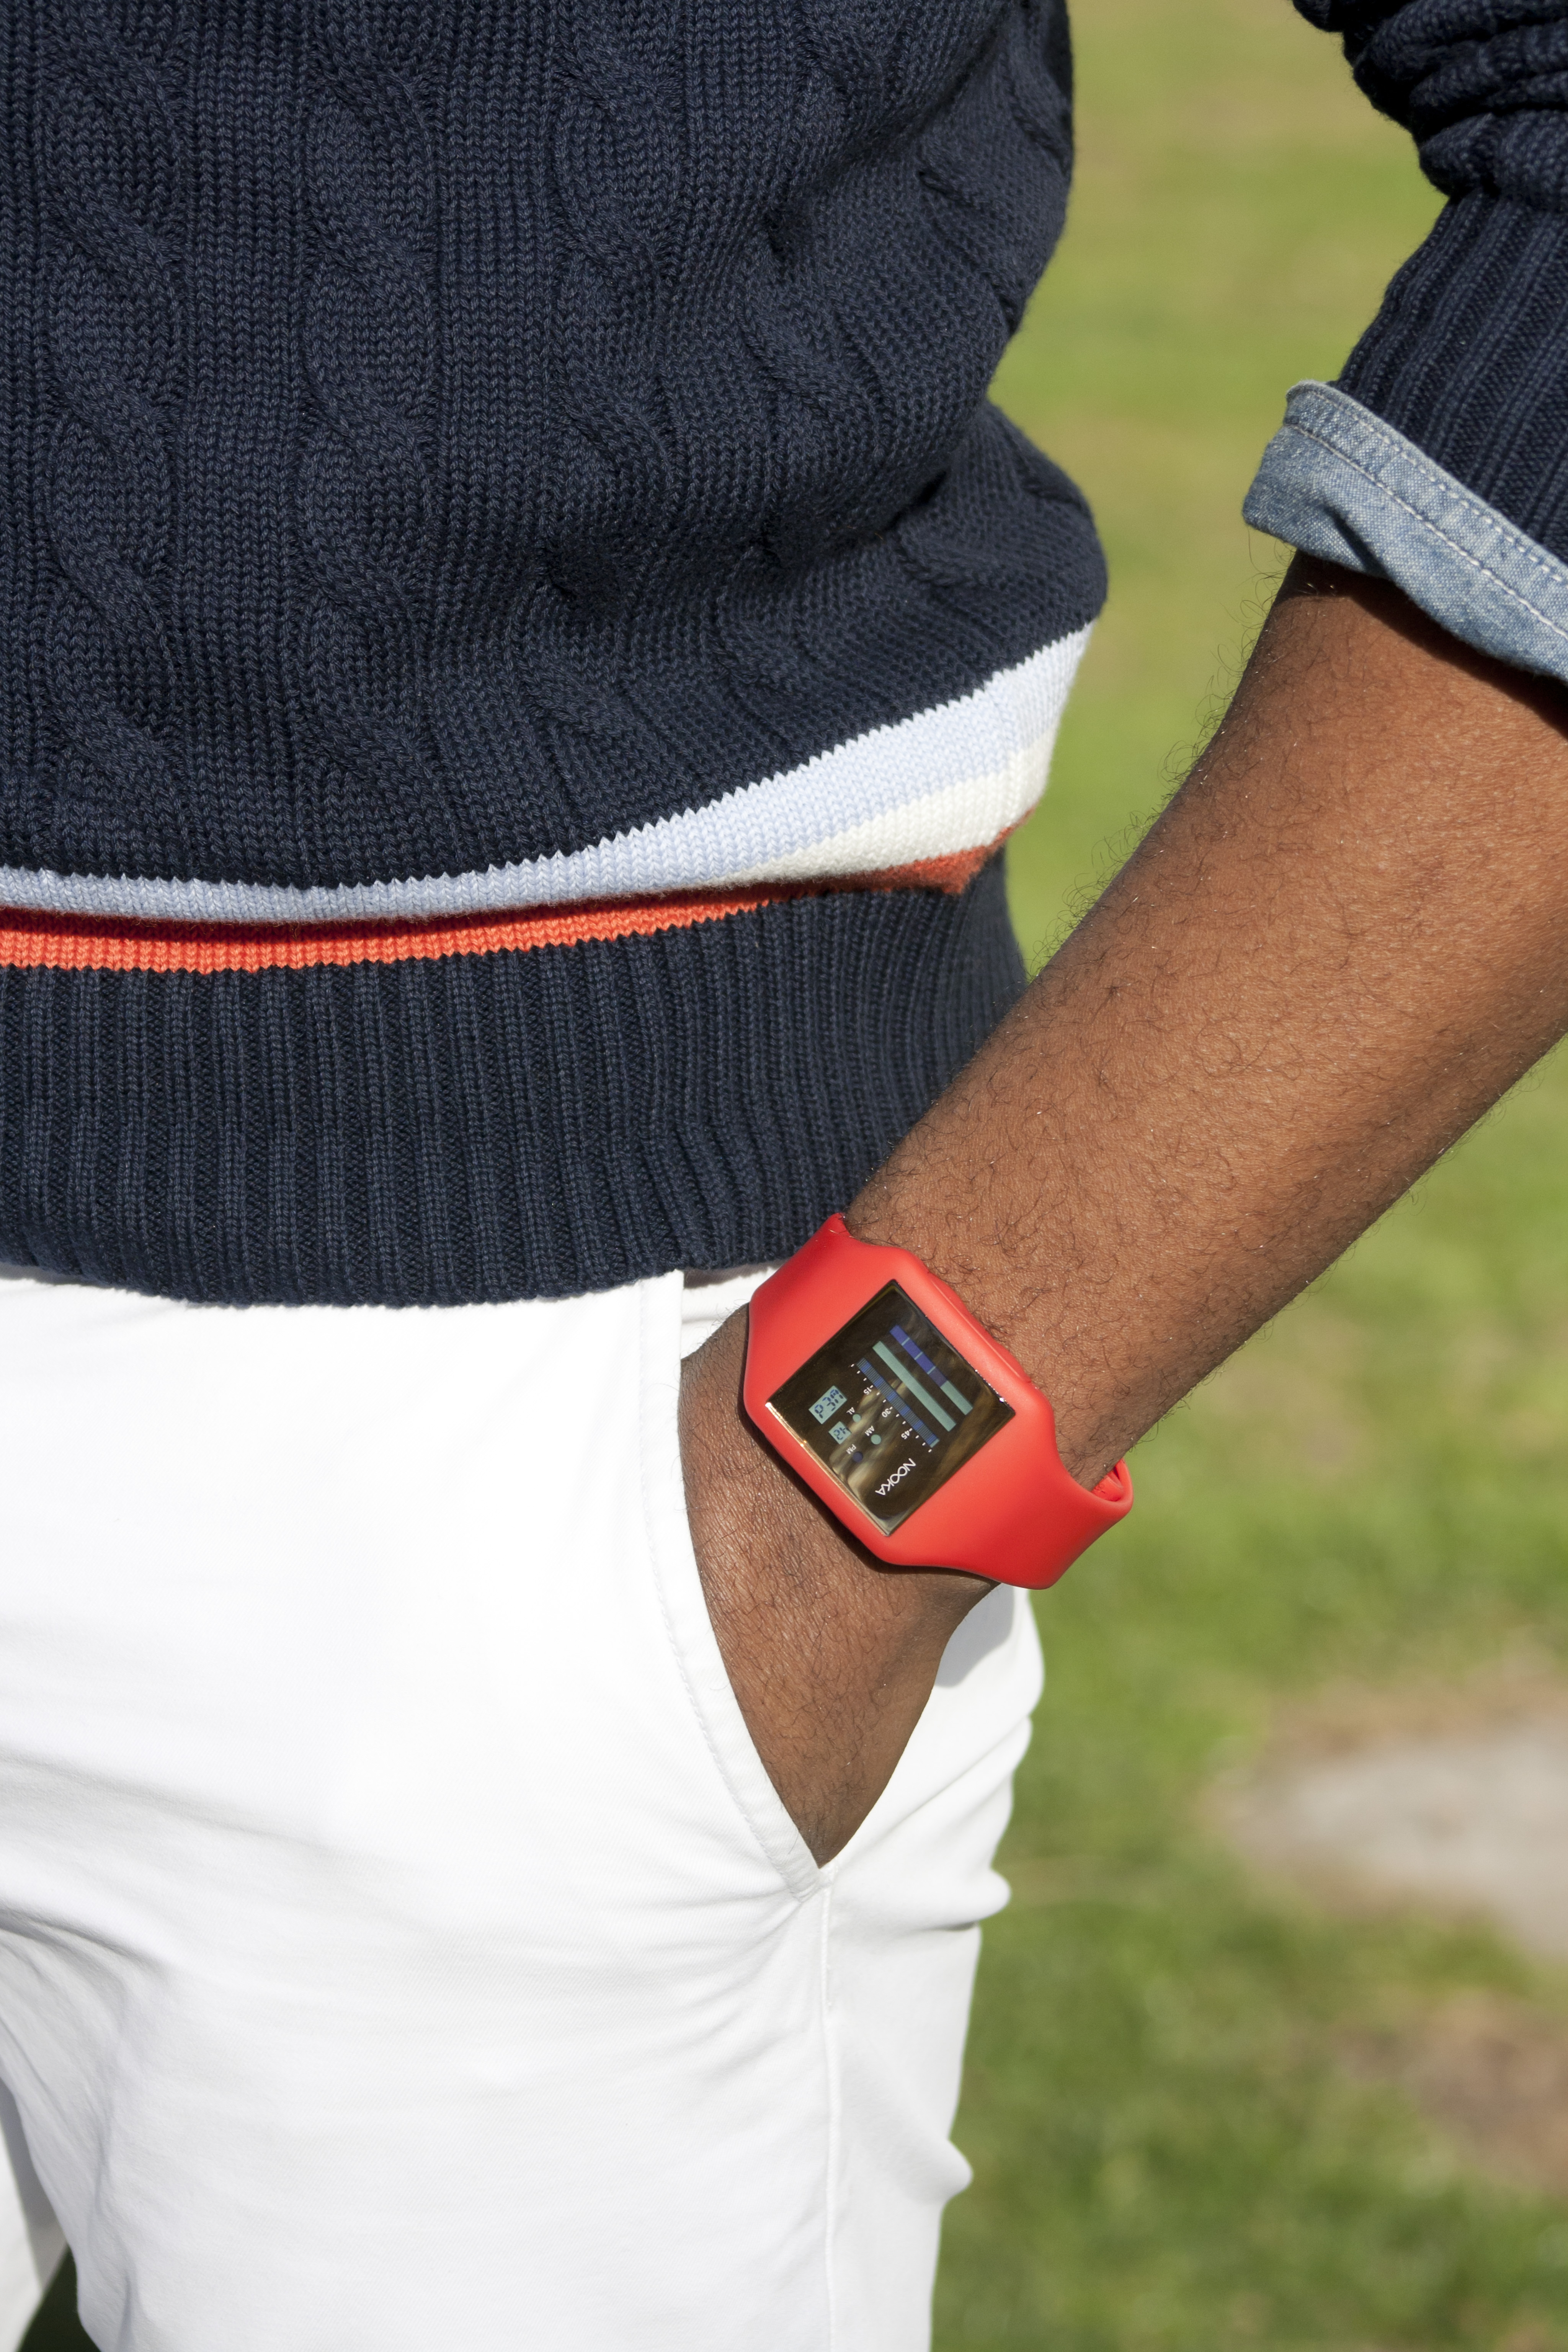 Sabir in Uniqlo Cricket Sweater with Nooka Watch